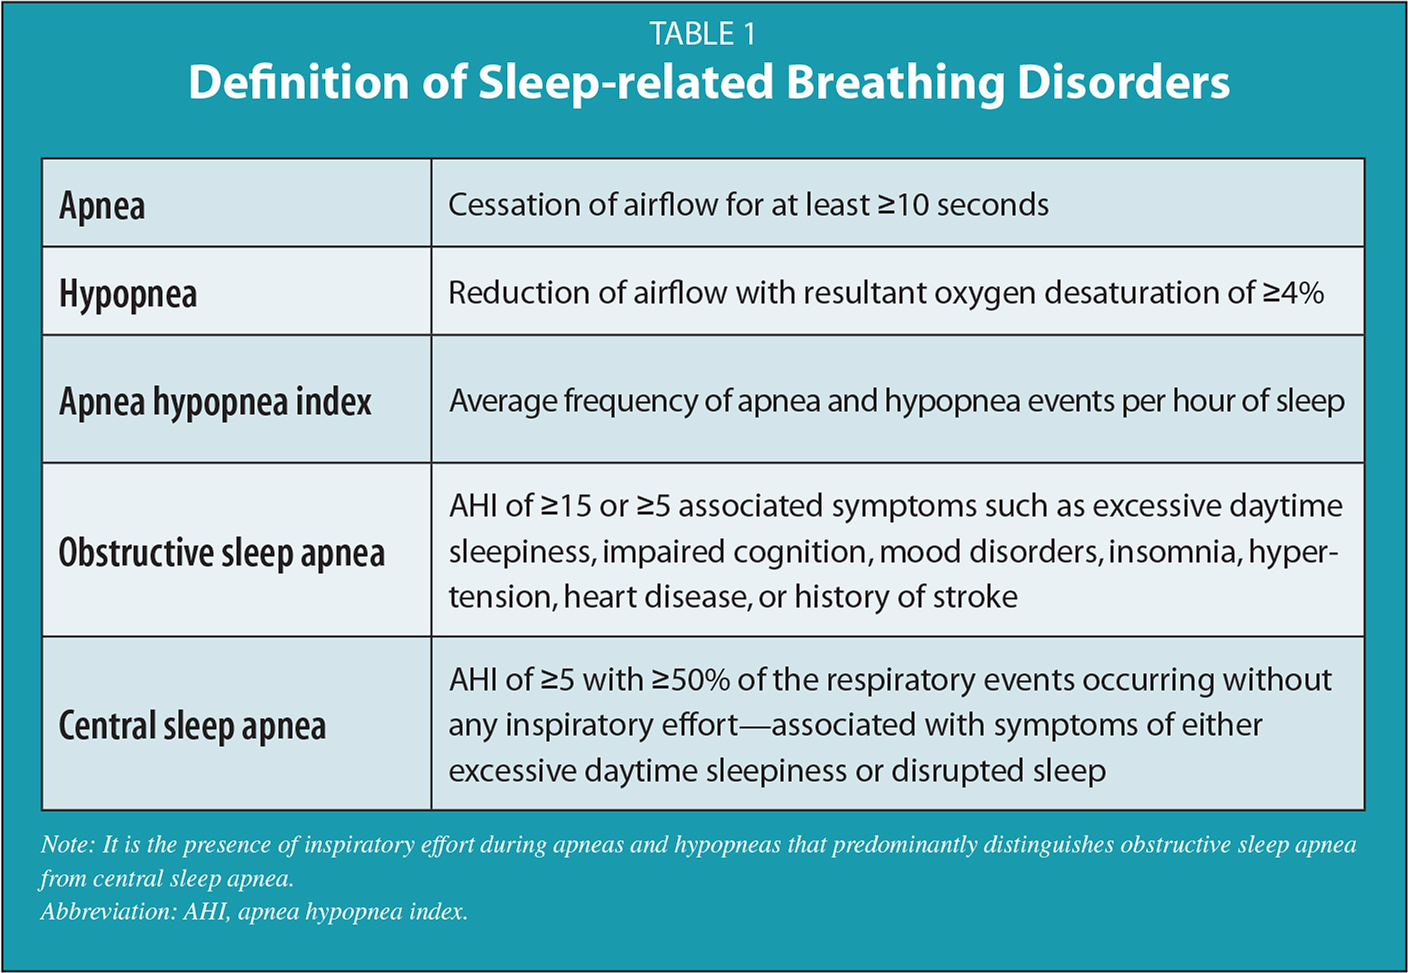 obstructive sleep apnea: an update for mental health providers